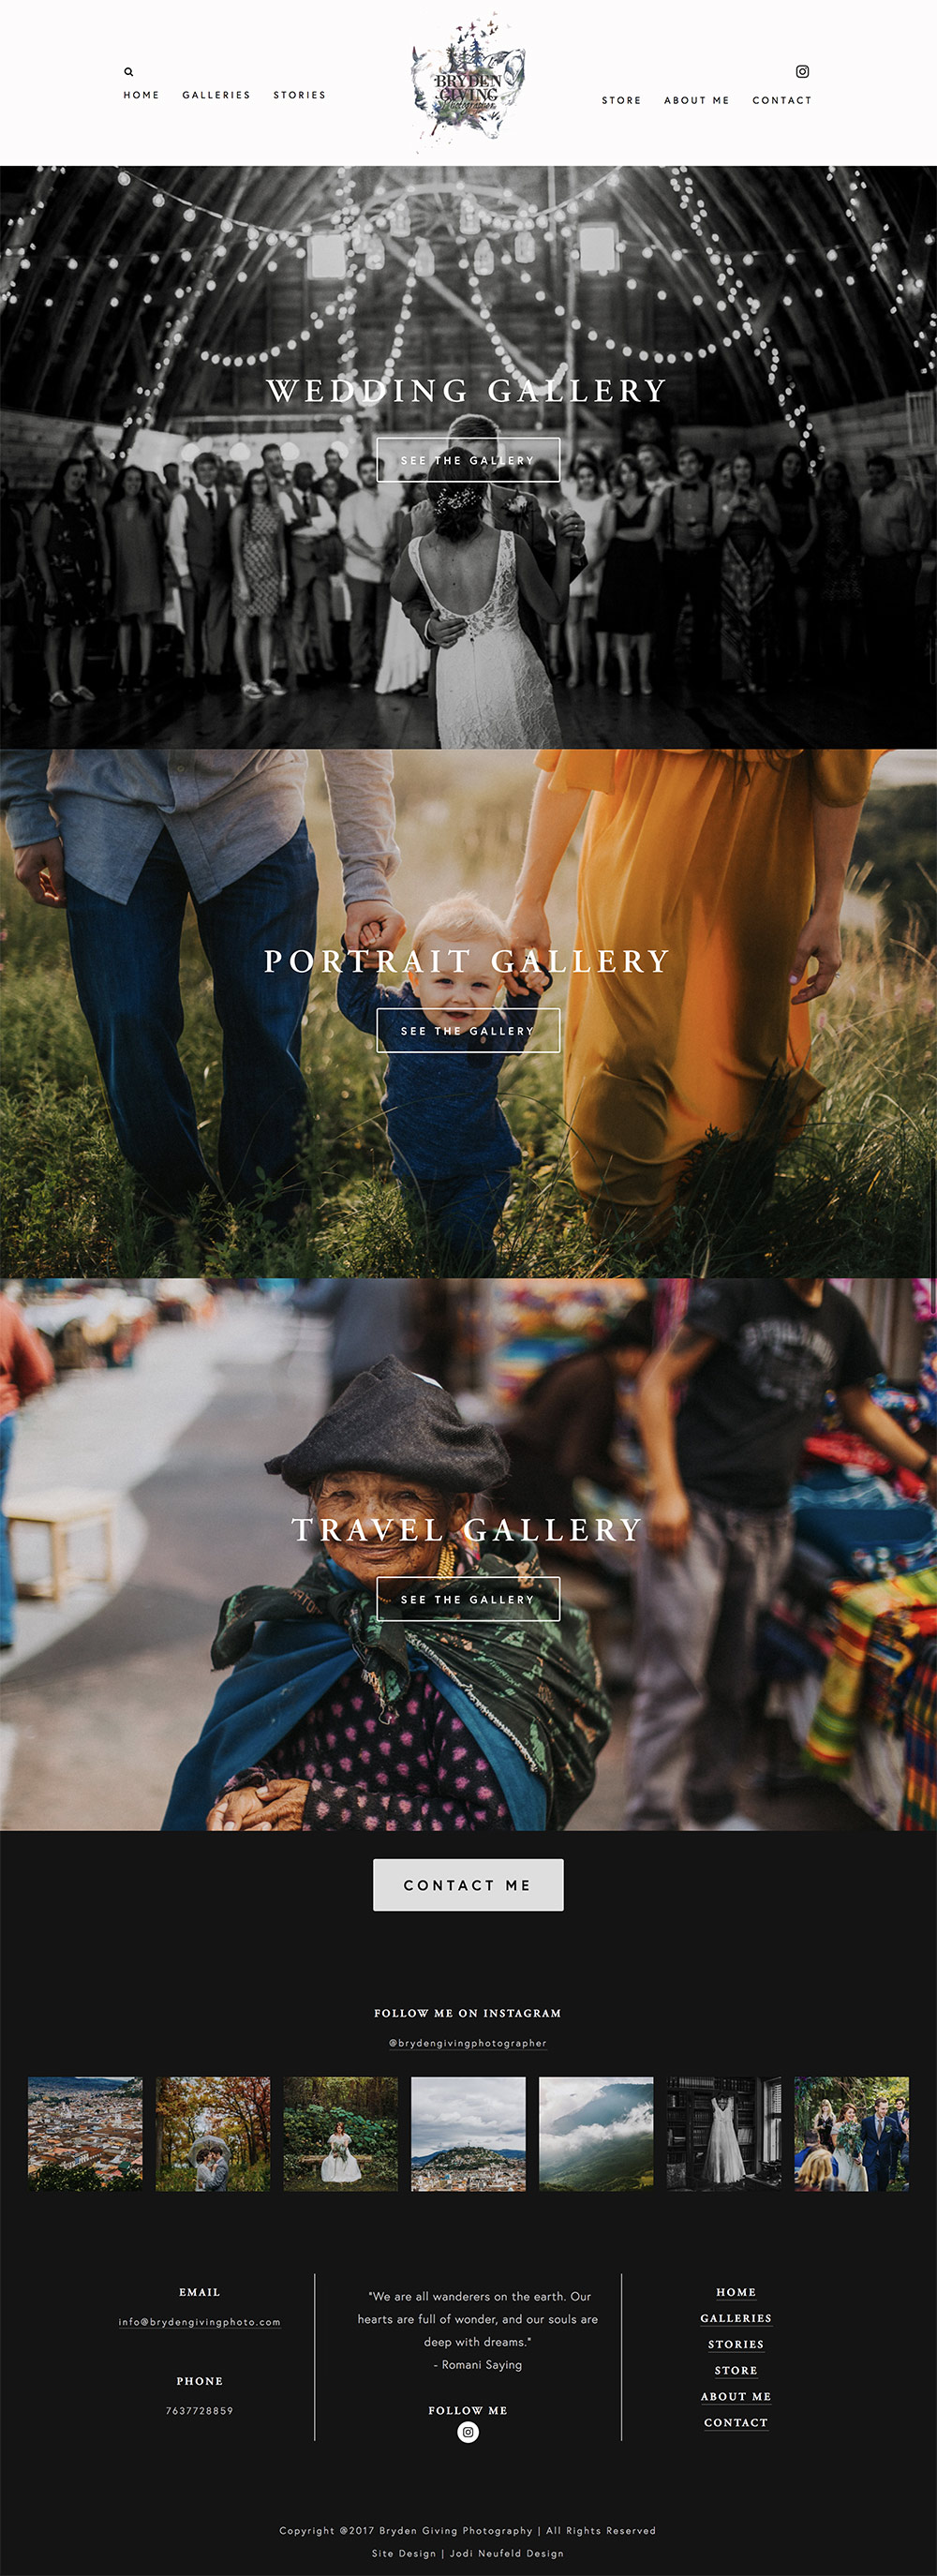 Bryden Giving Photographer Galleries page | custom Squarespace webdesign for Photographer | Jodi Neufeld Design